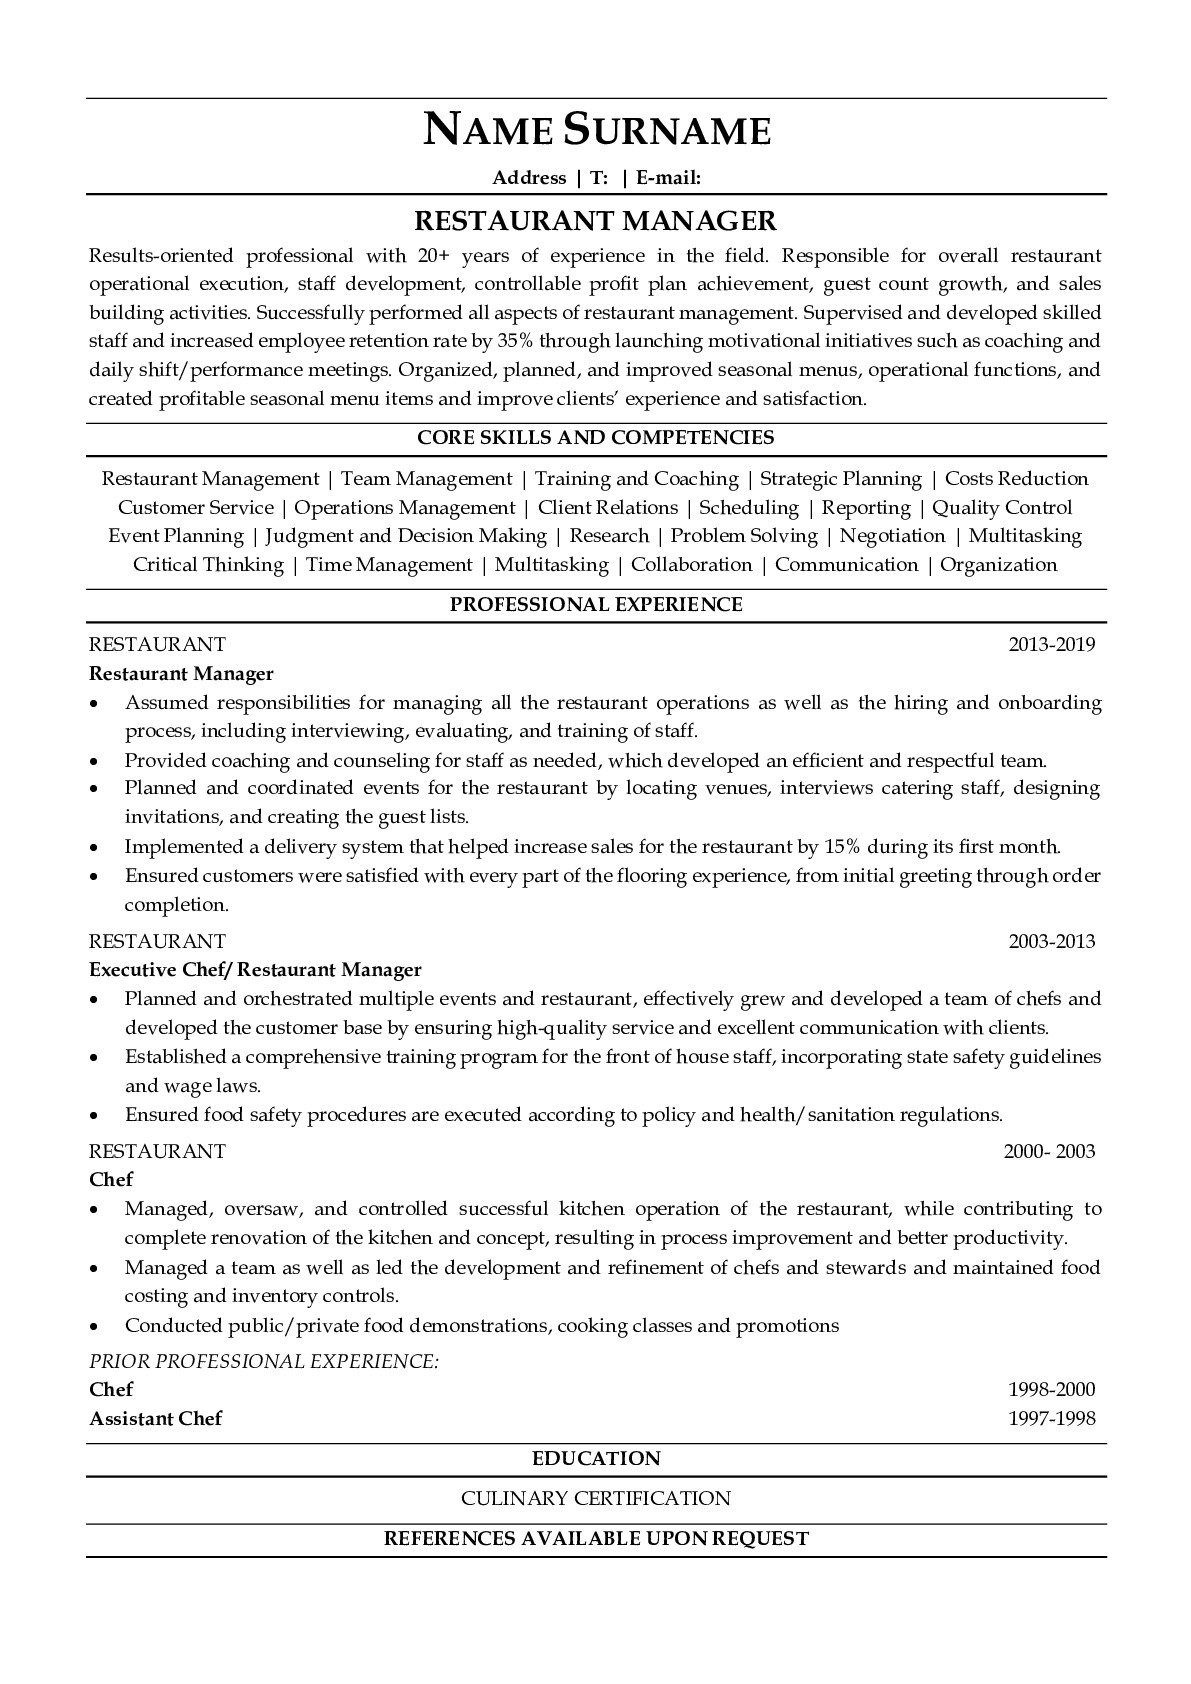 Resume Example for Restaurant Manager